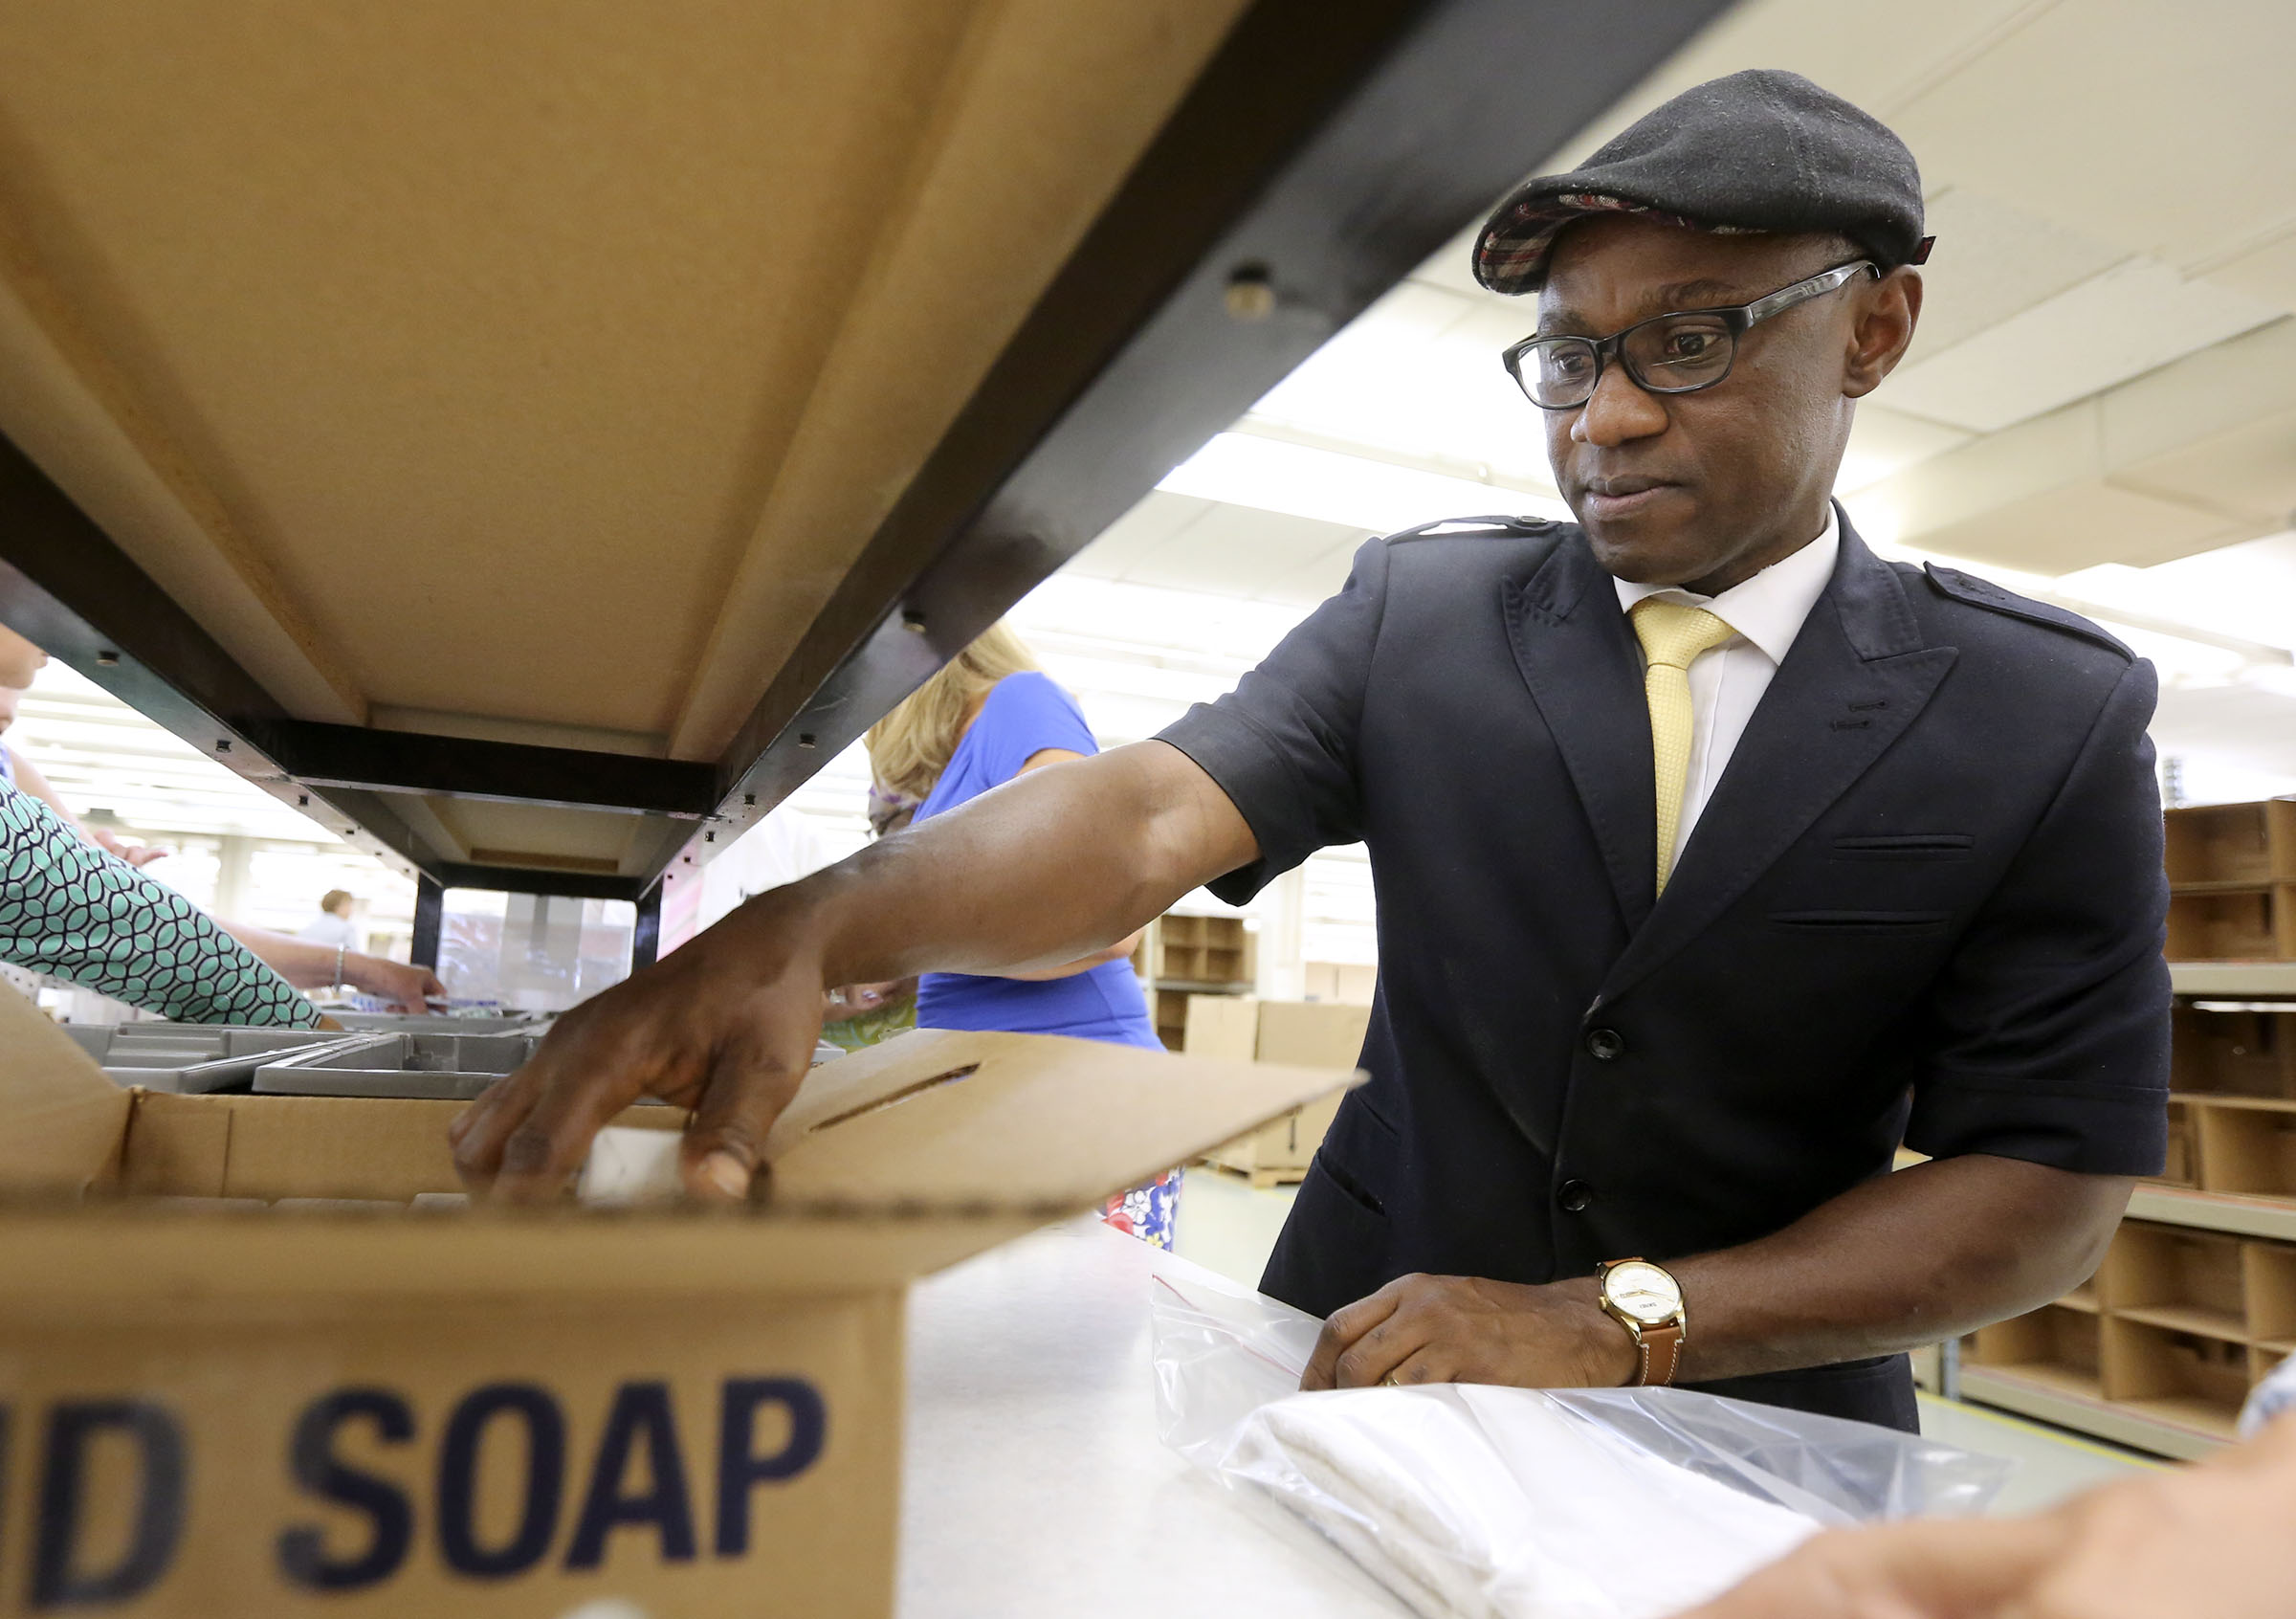 Bayo Olayemi helps make sanitary kits at the Latter-day Saint Humanitarian Center in Salt Lake City on Thursday, July 25, 2019.